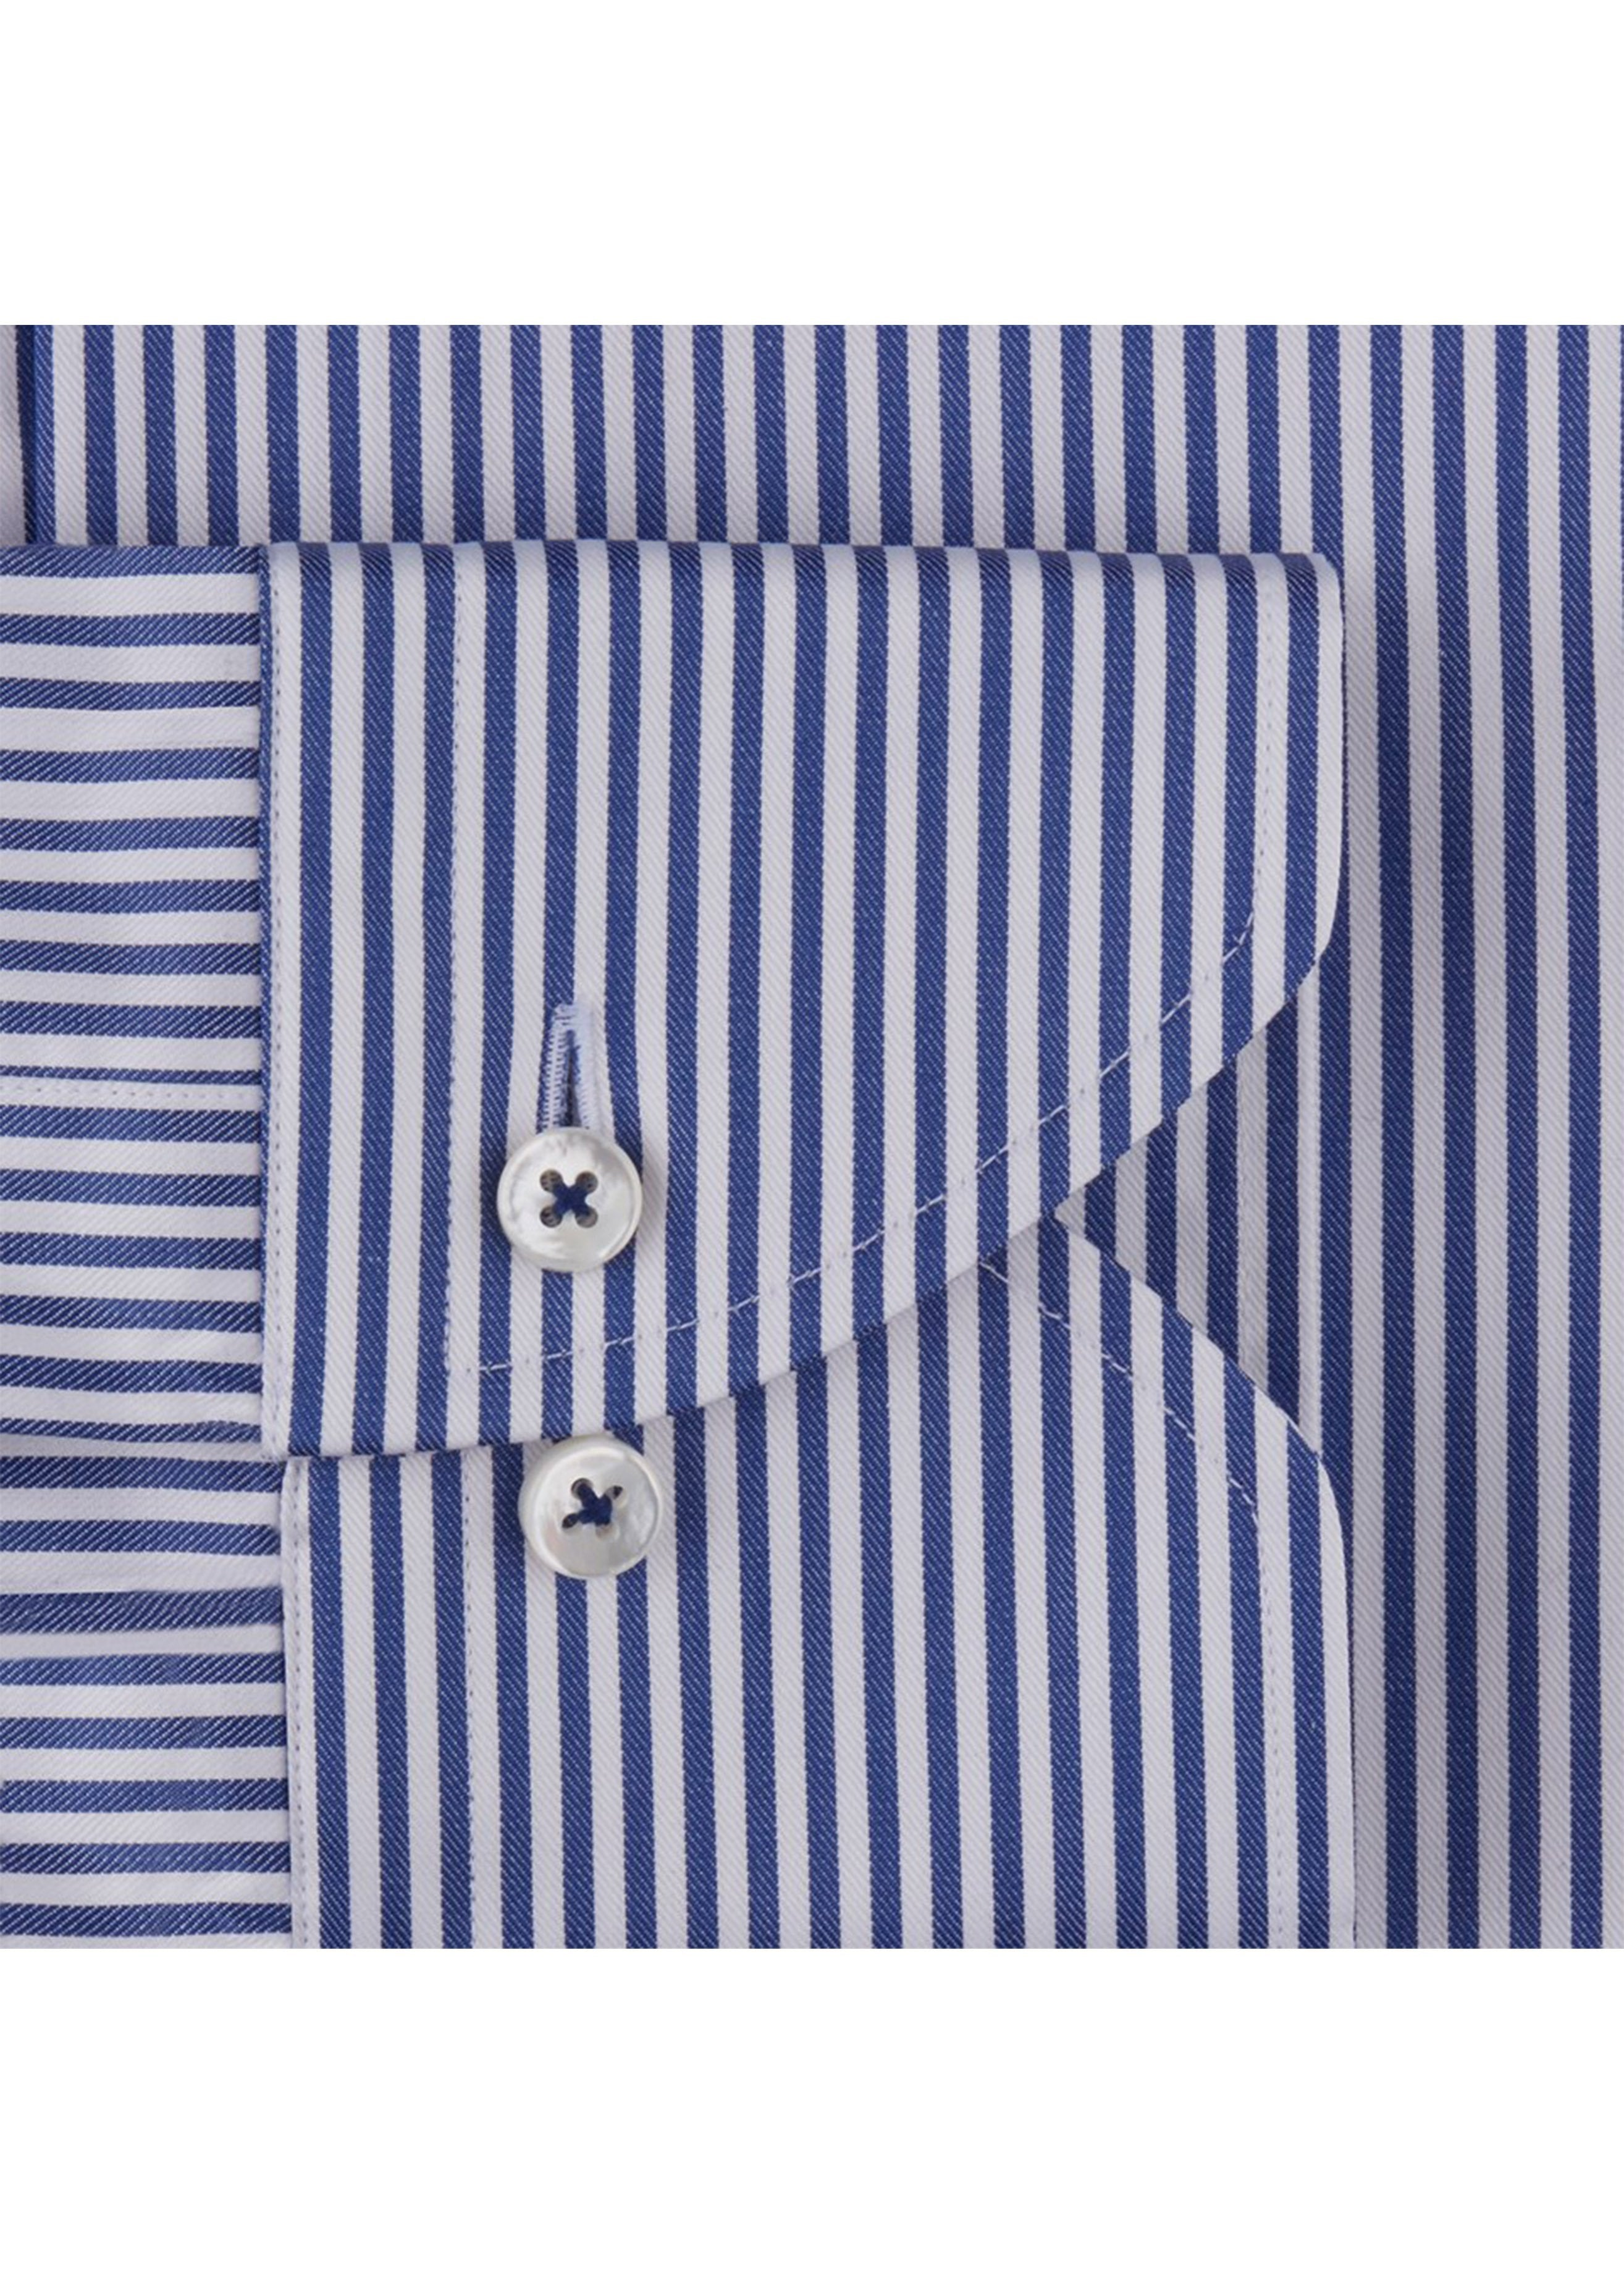 9fdc4456a4f4 Stenstroms Blue Cadet Striped Fitted Body Shirt